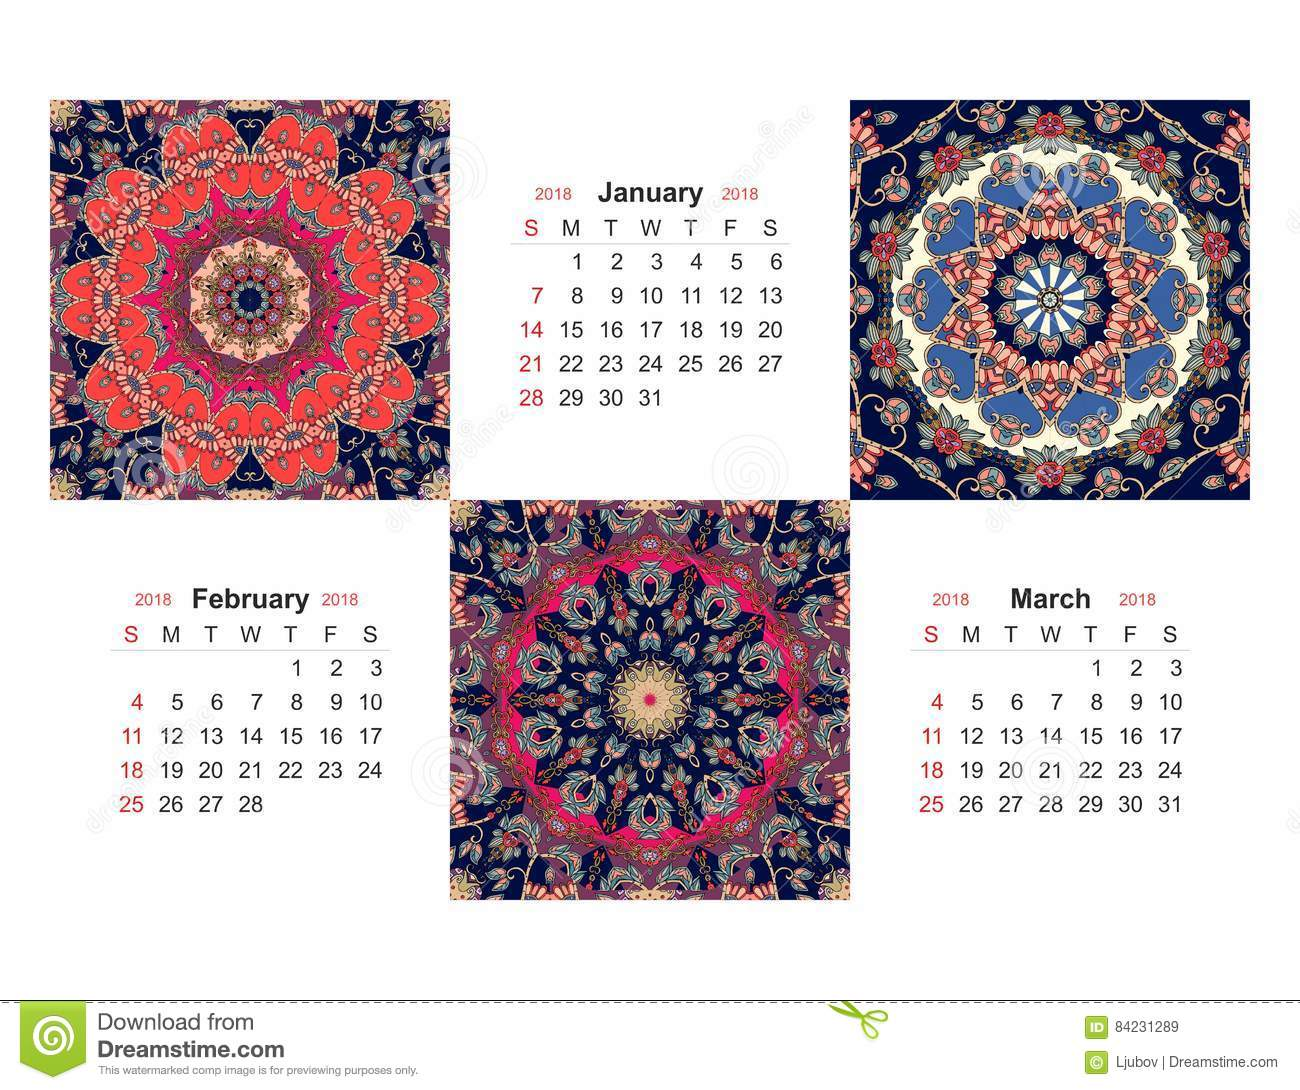 February 2018 Calendar Vintage : Calendar for year on indian ornamental background